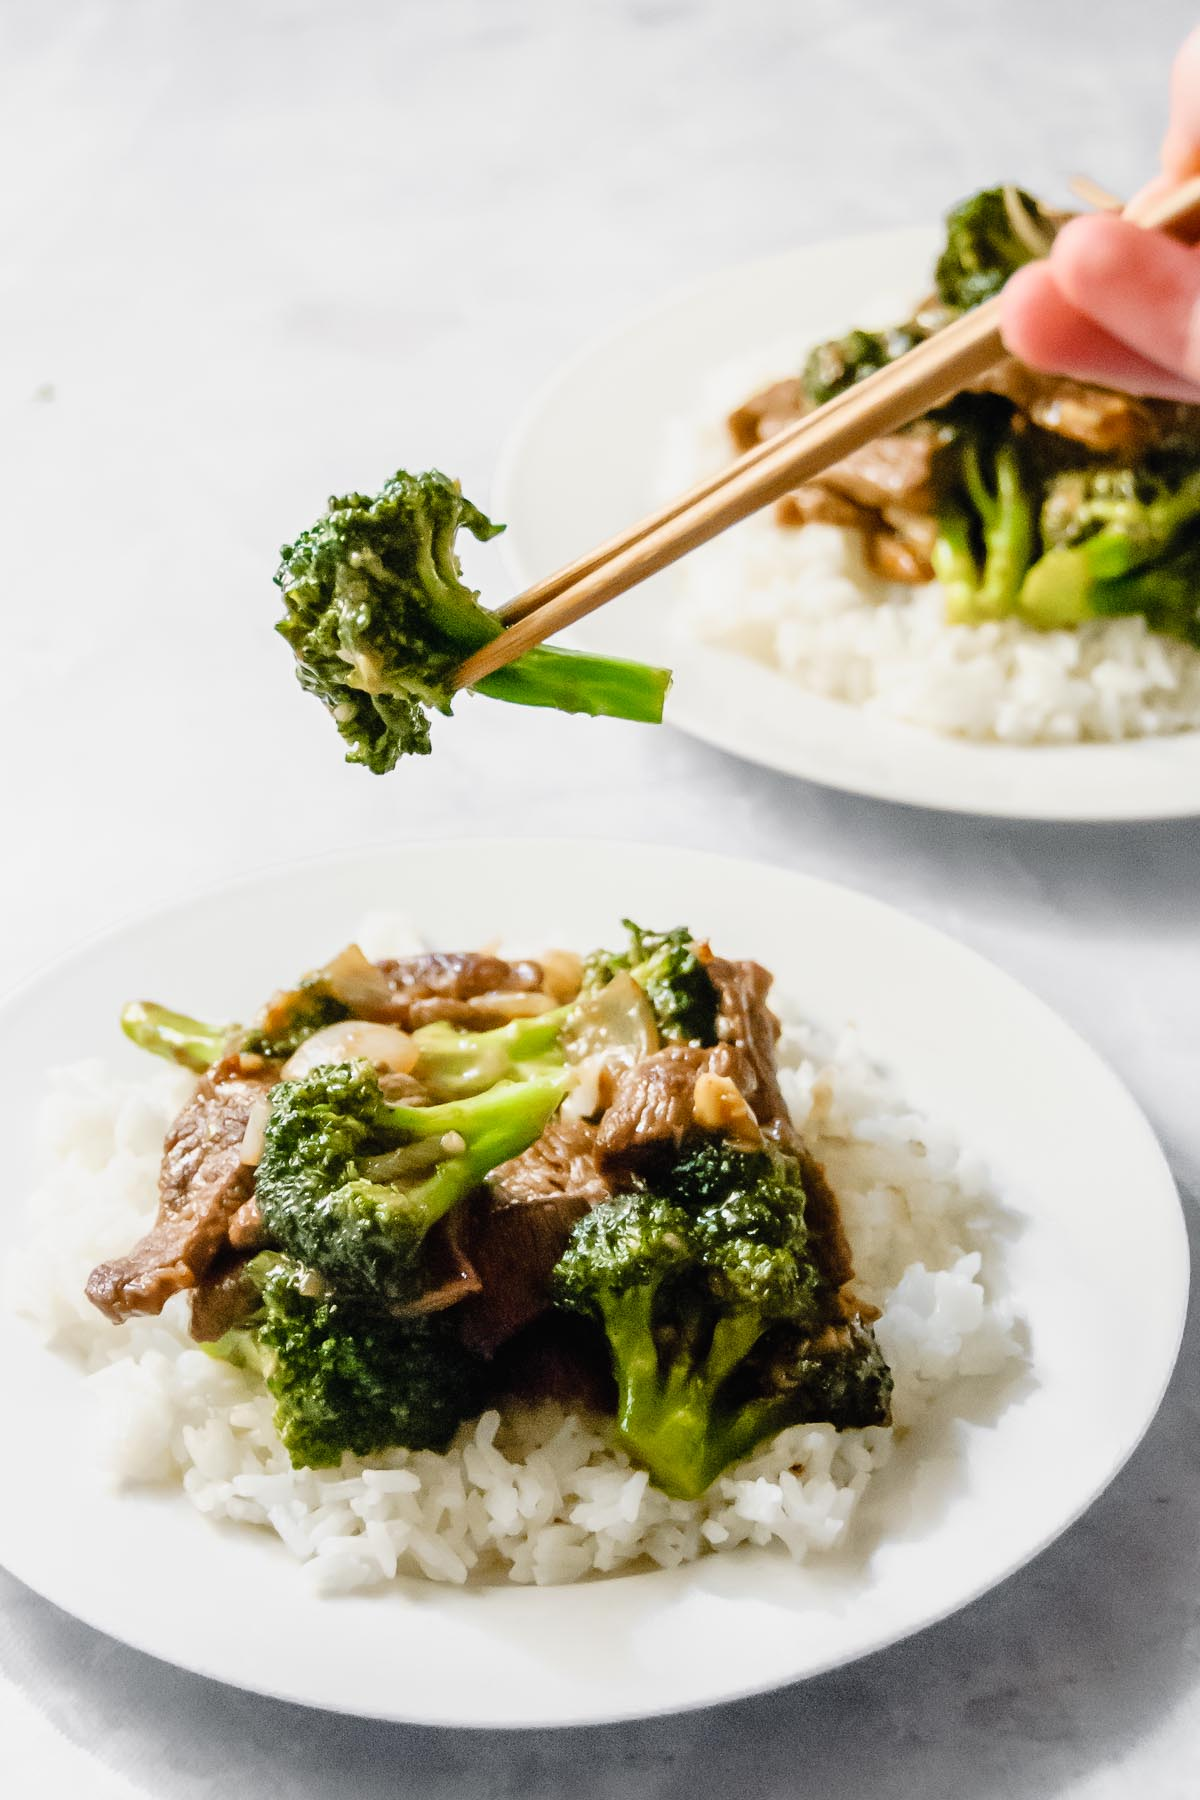 Chinese broccoli beef over rice on a white plate with chopsticks holding a piece of broccoli.